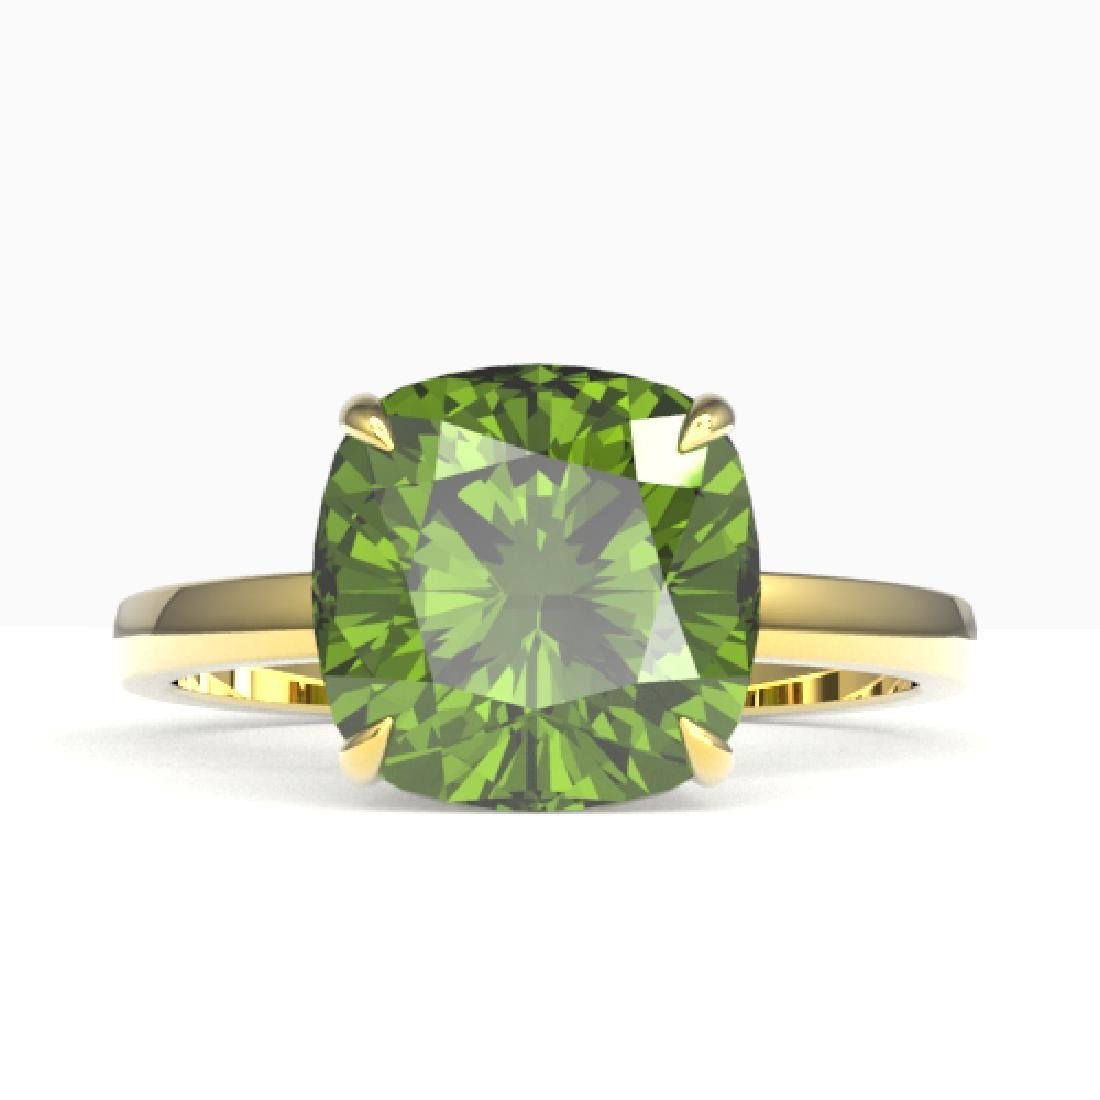 6 CTW Cushion Cut Green Tourmaline Designer Solitaire